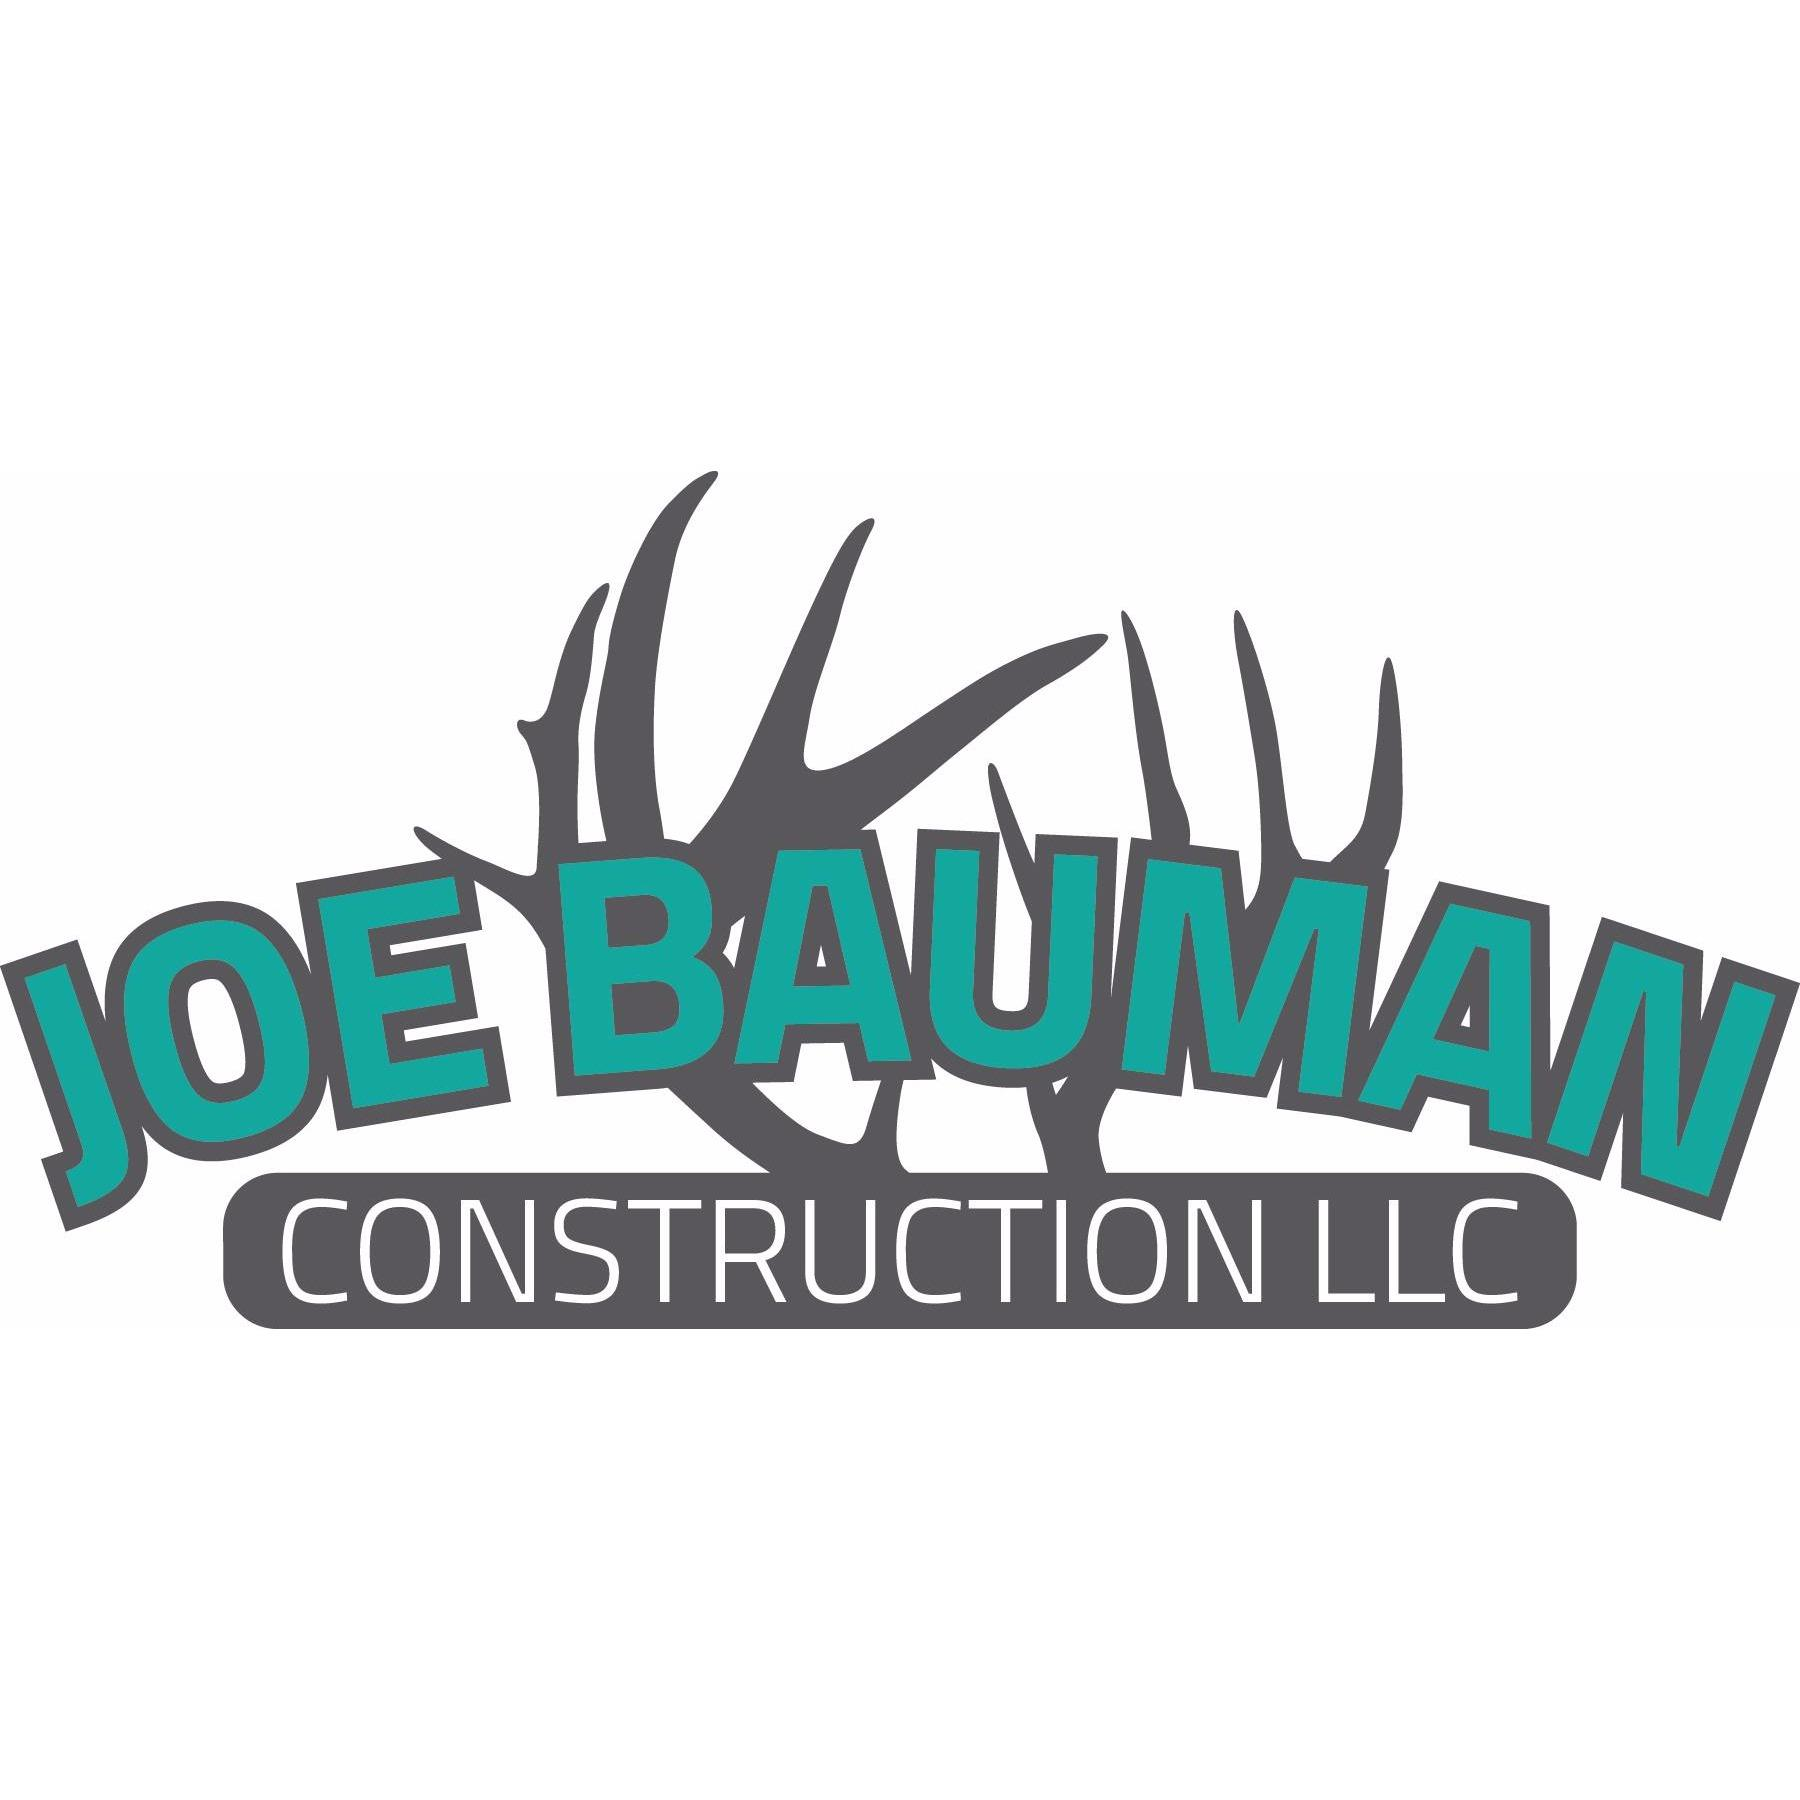 Joe Bauman Construction, LLC